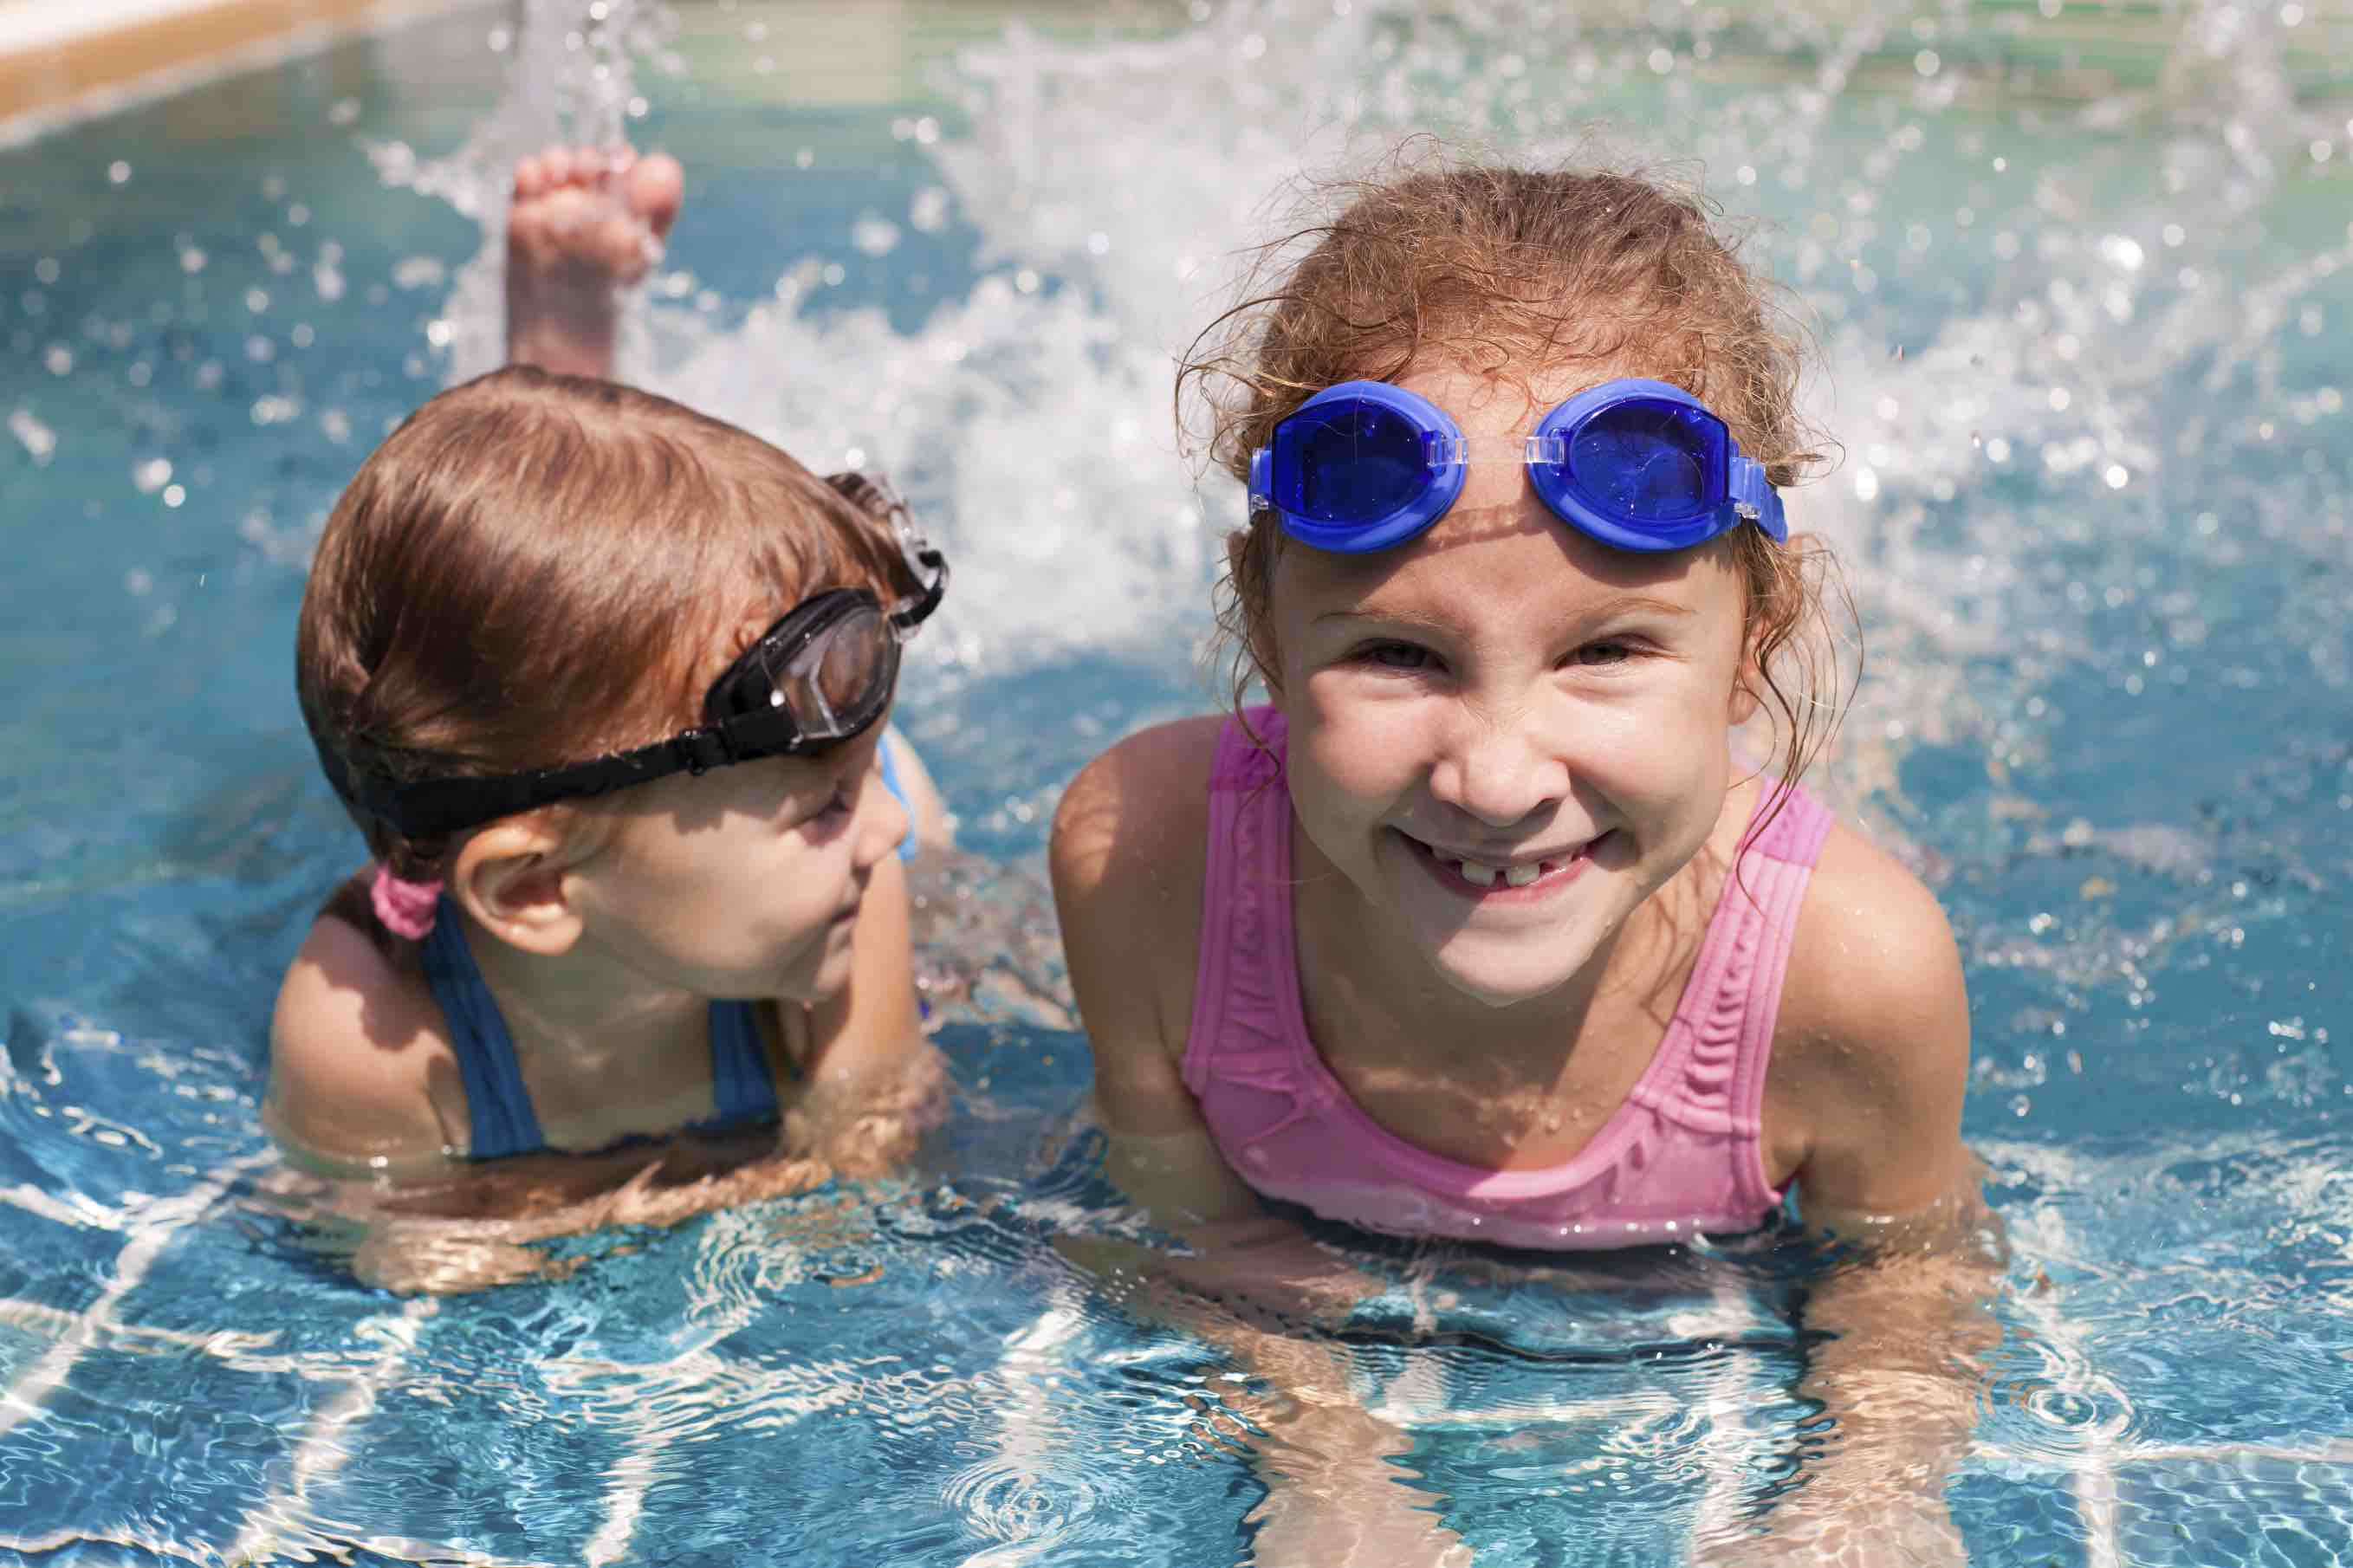 Chlorine might not be your teeth's best friend, but don't let pool chemicals prevent you from diving in!